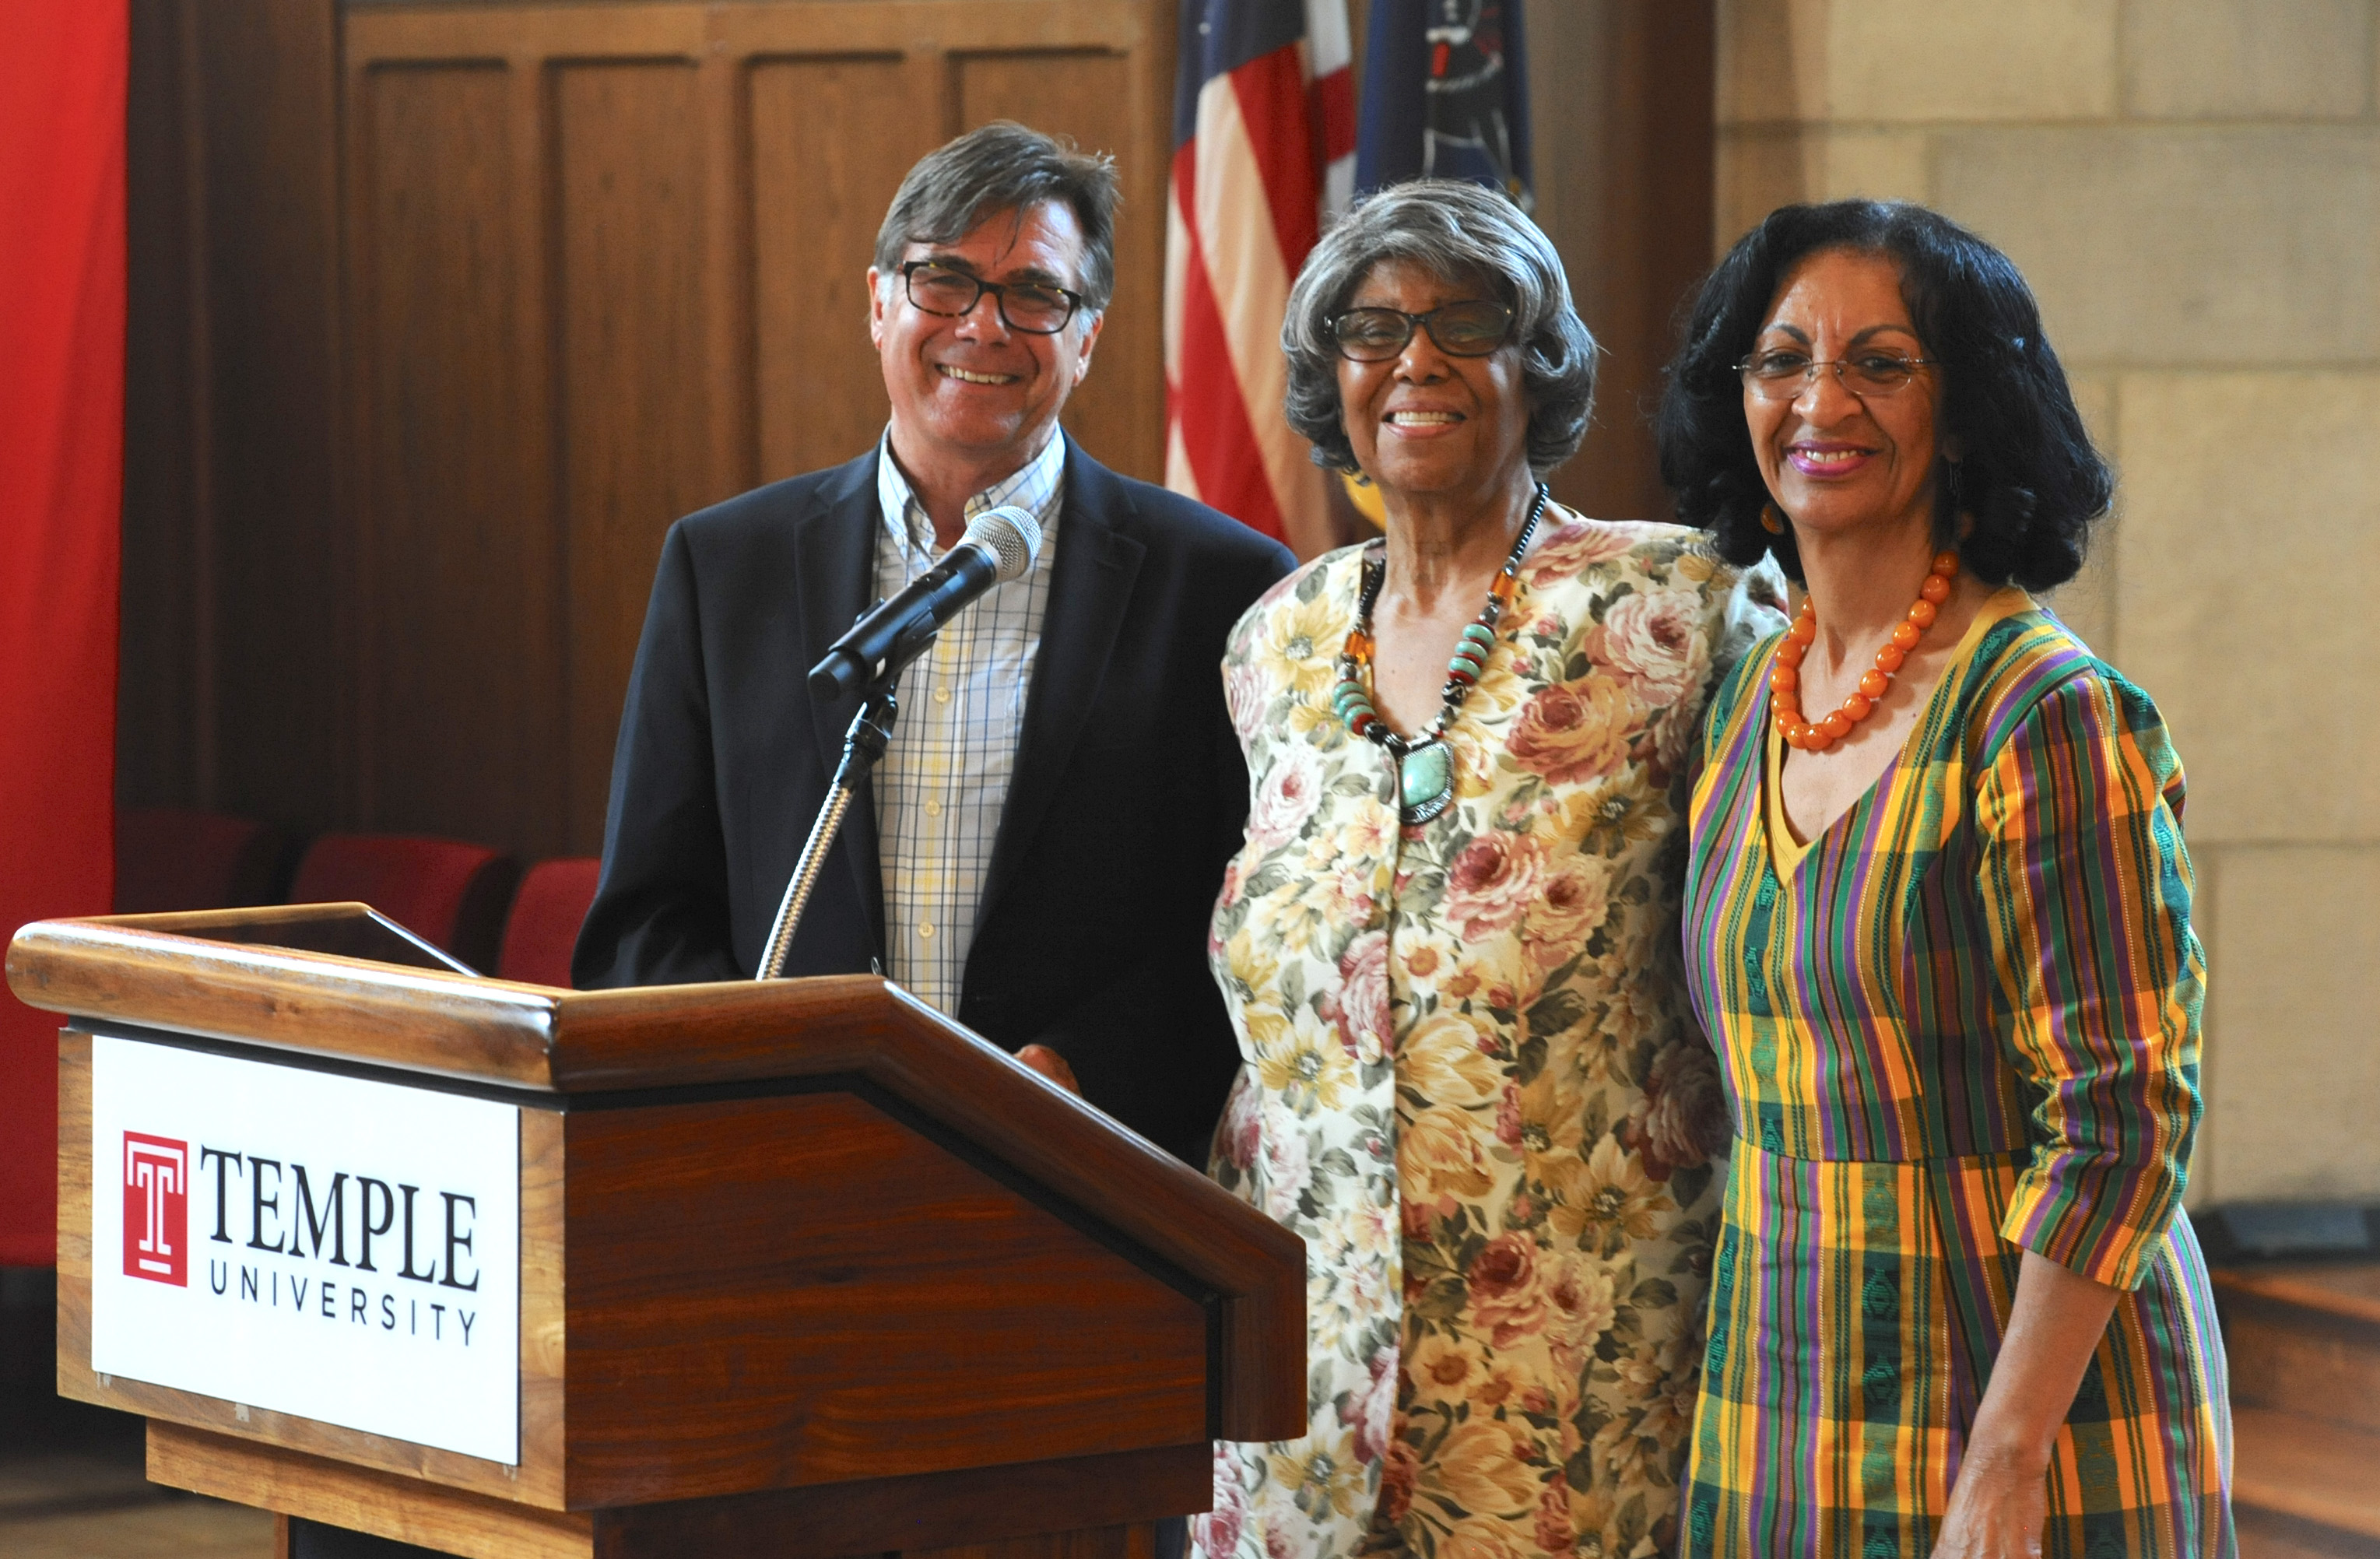 The Dr. Ione D. Vargus Lecture Series: A Conversation and Book Launch